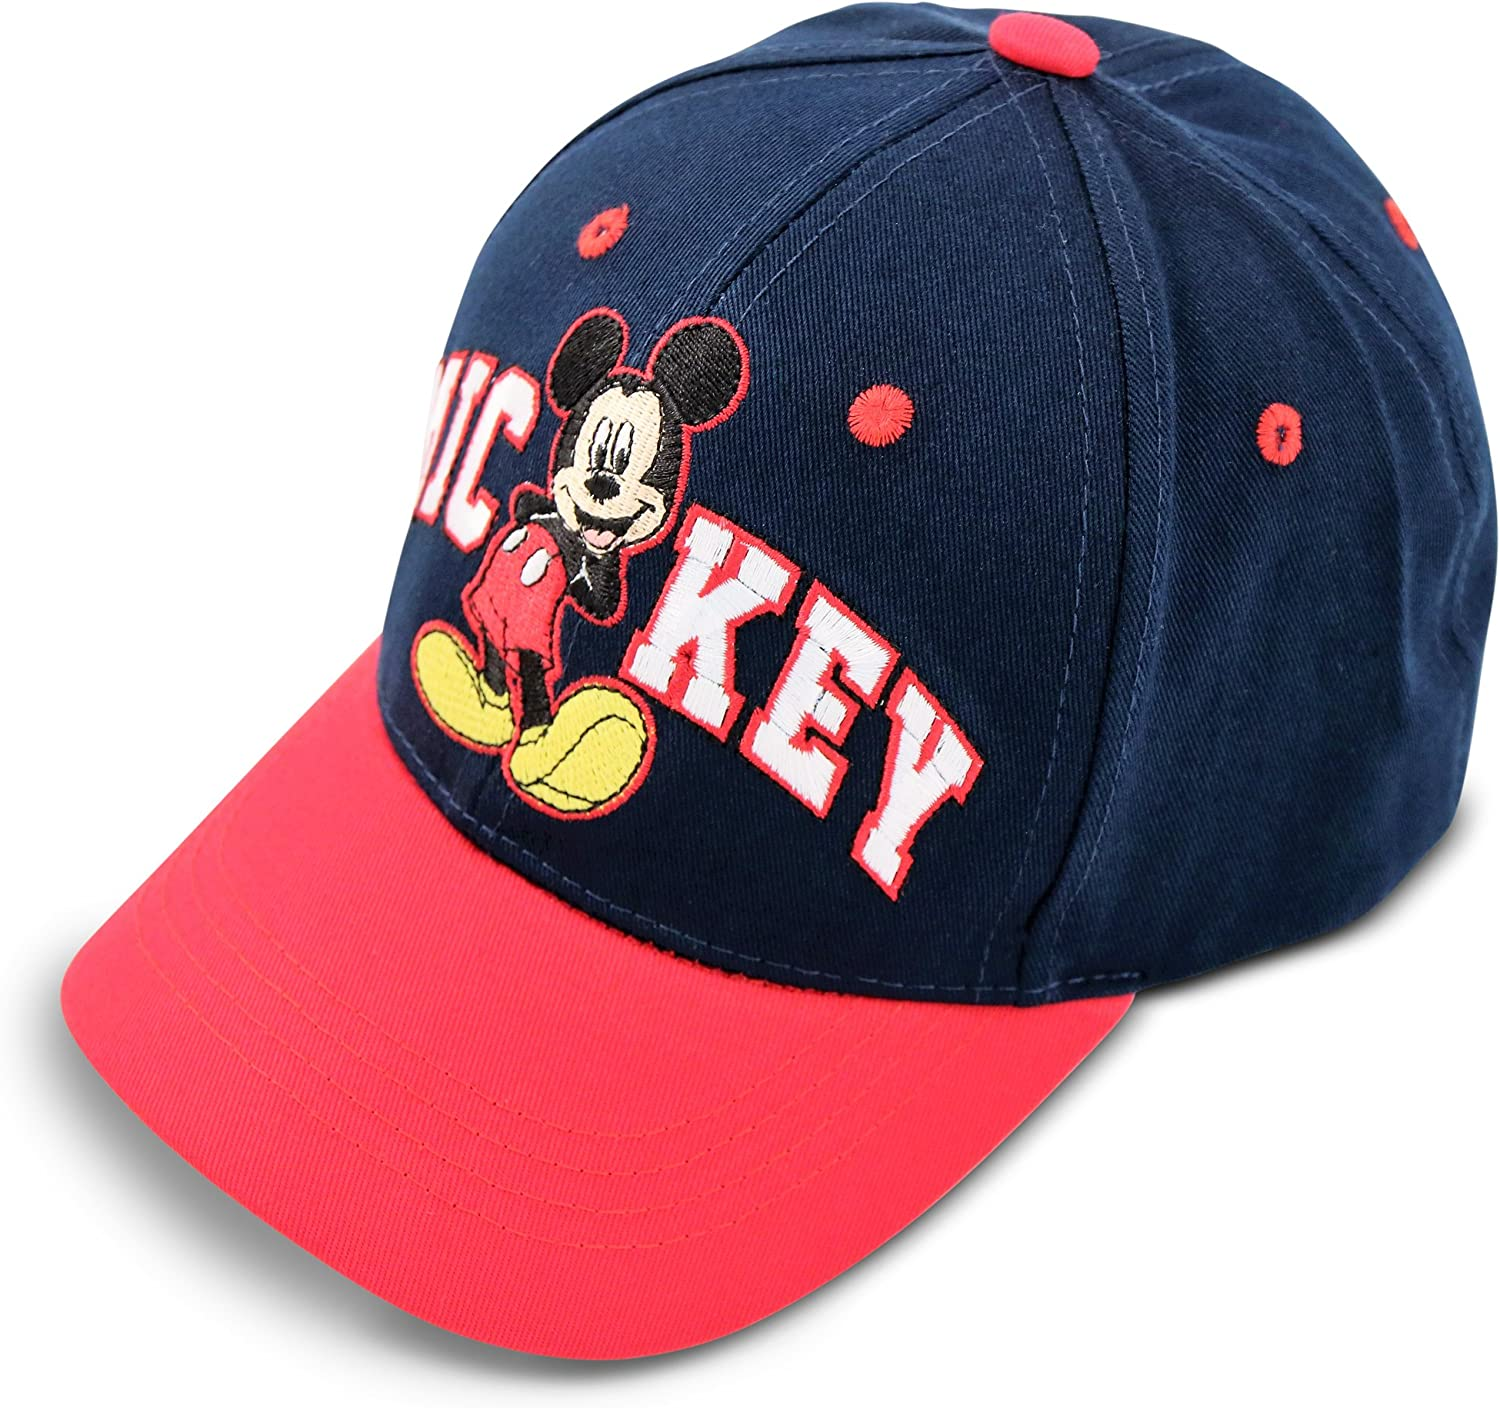 Disney Kids Hat for Toddler Or Little Boys Ages 2-7 Mickey Mouse Baseball Cap